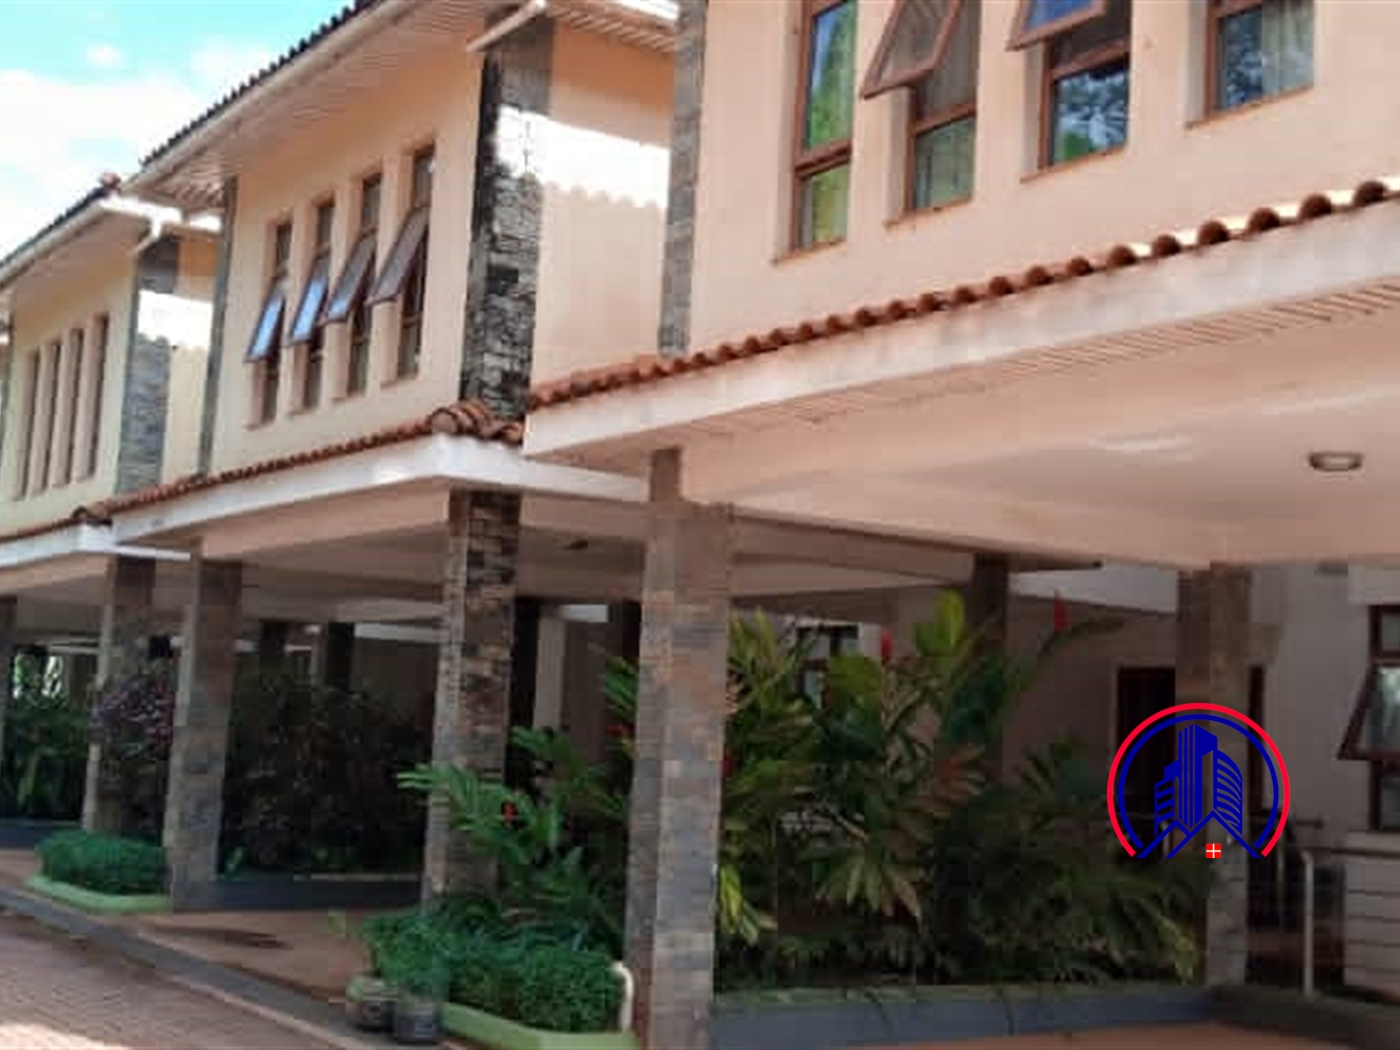 Apartment block for sale in Mbuya Kampala